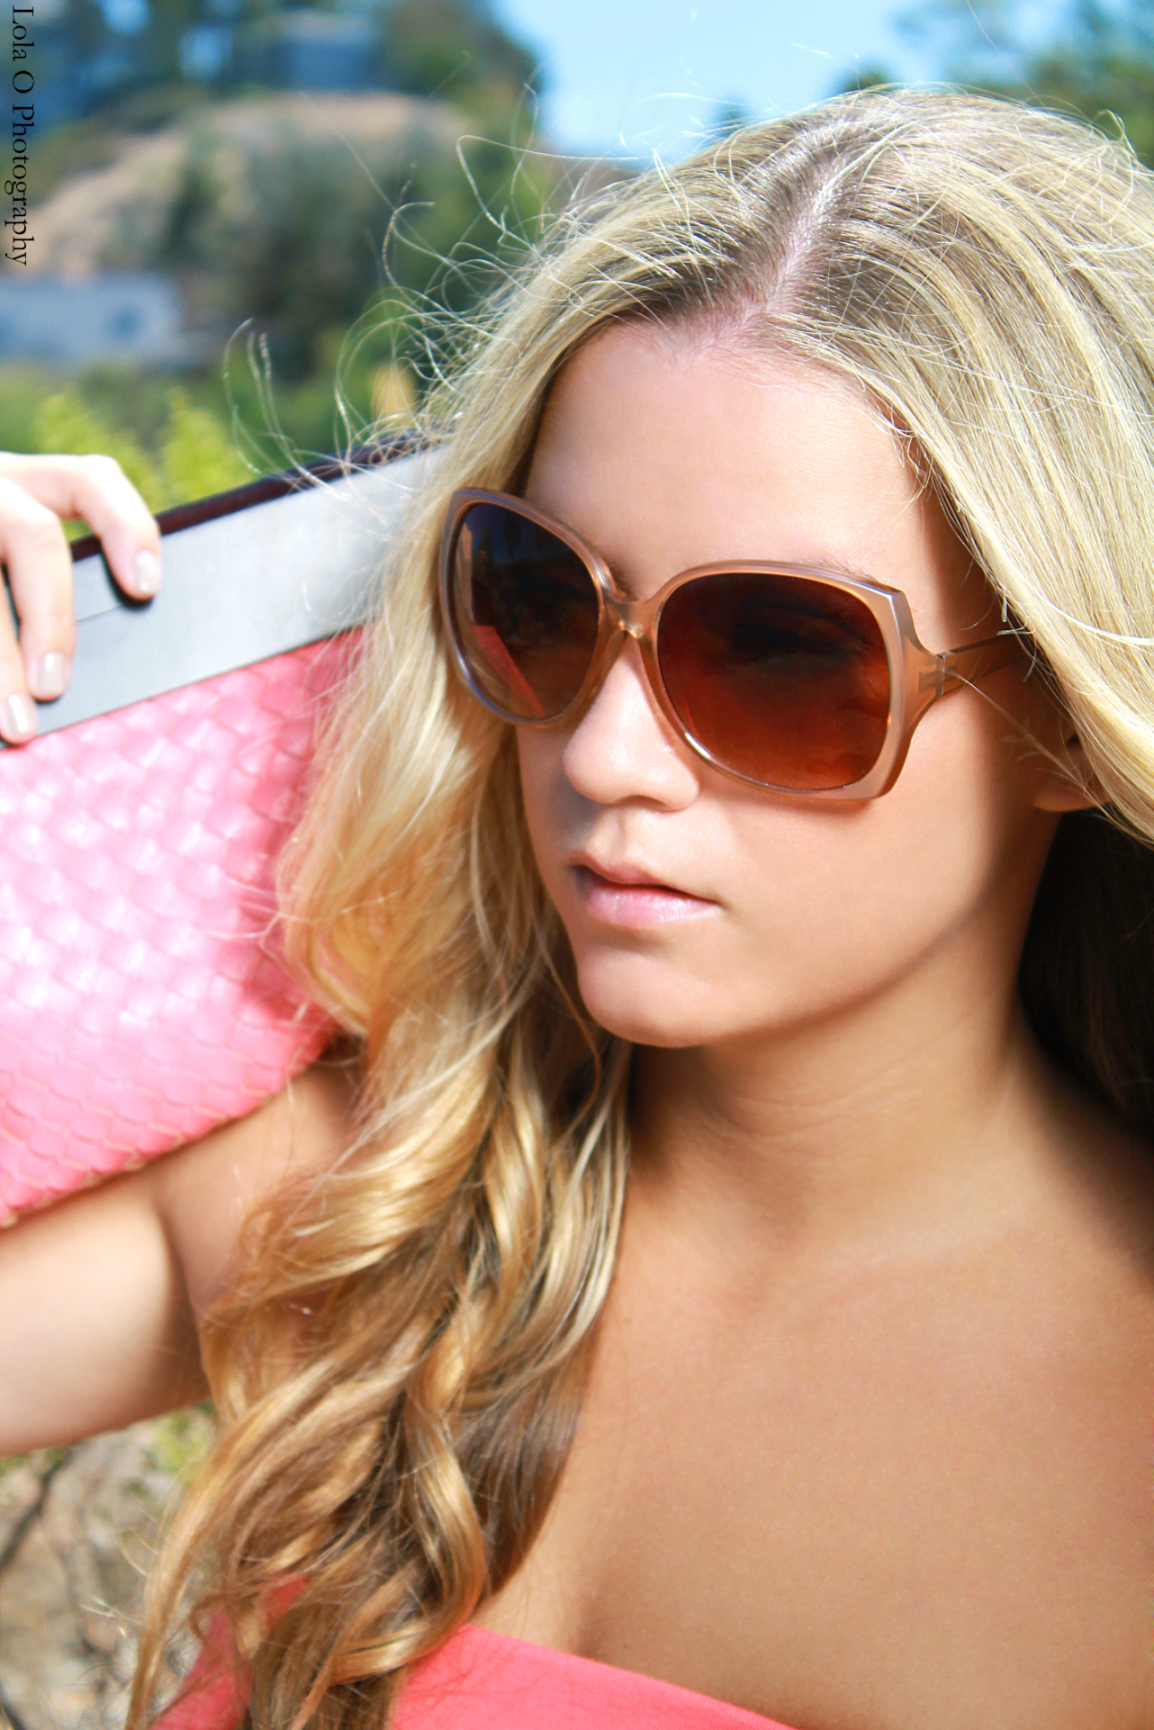 Think Like A Model - Modeling Accessories